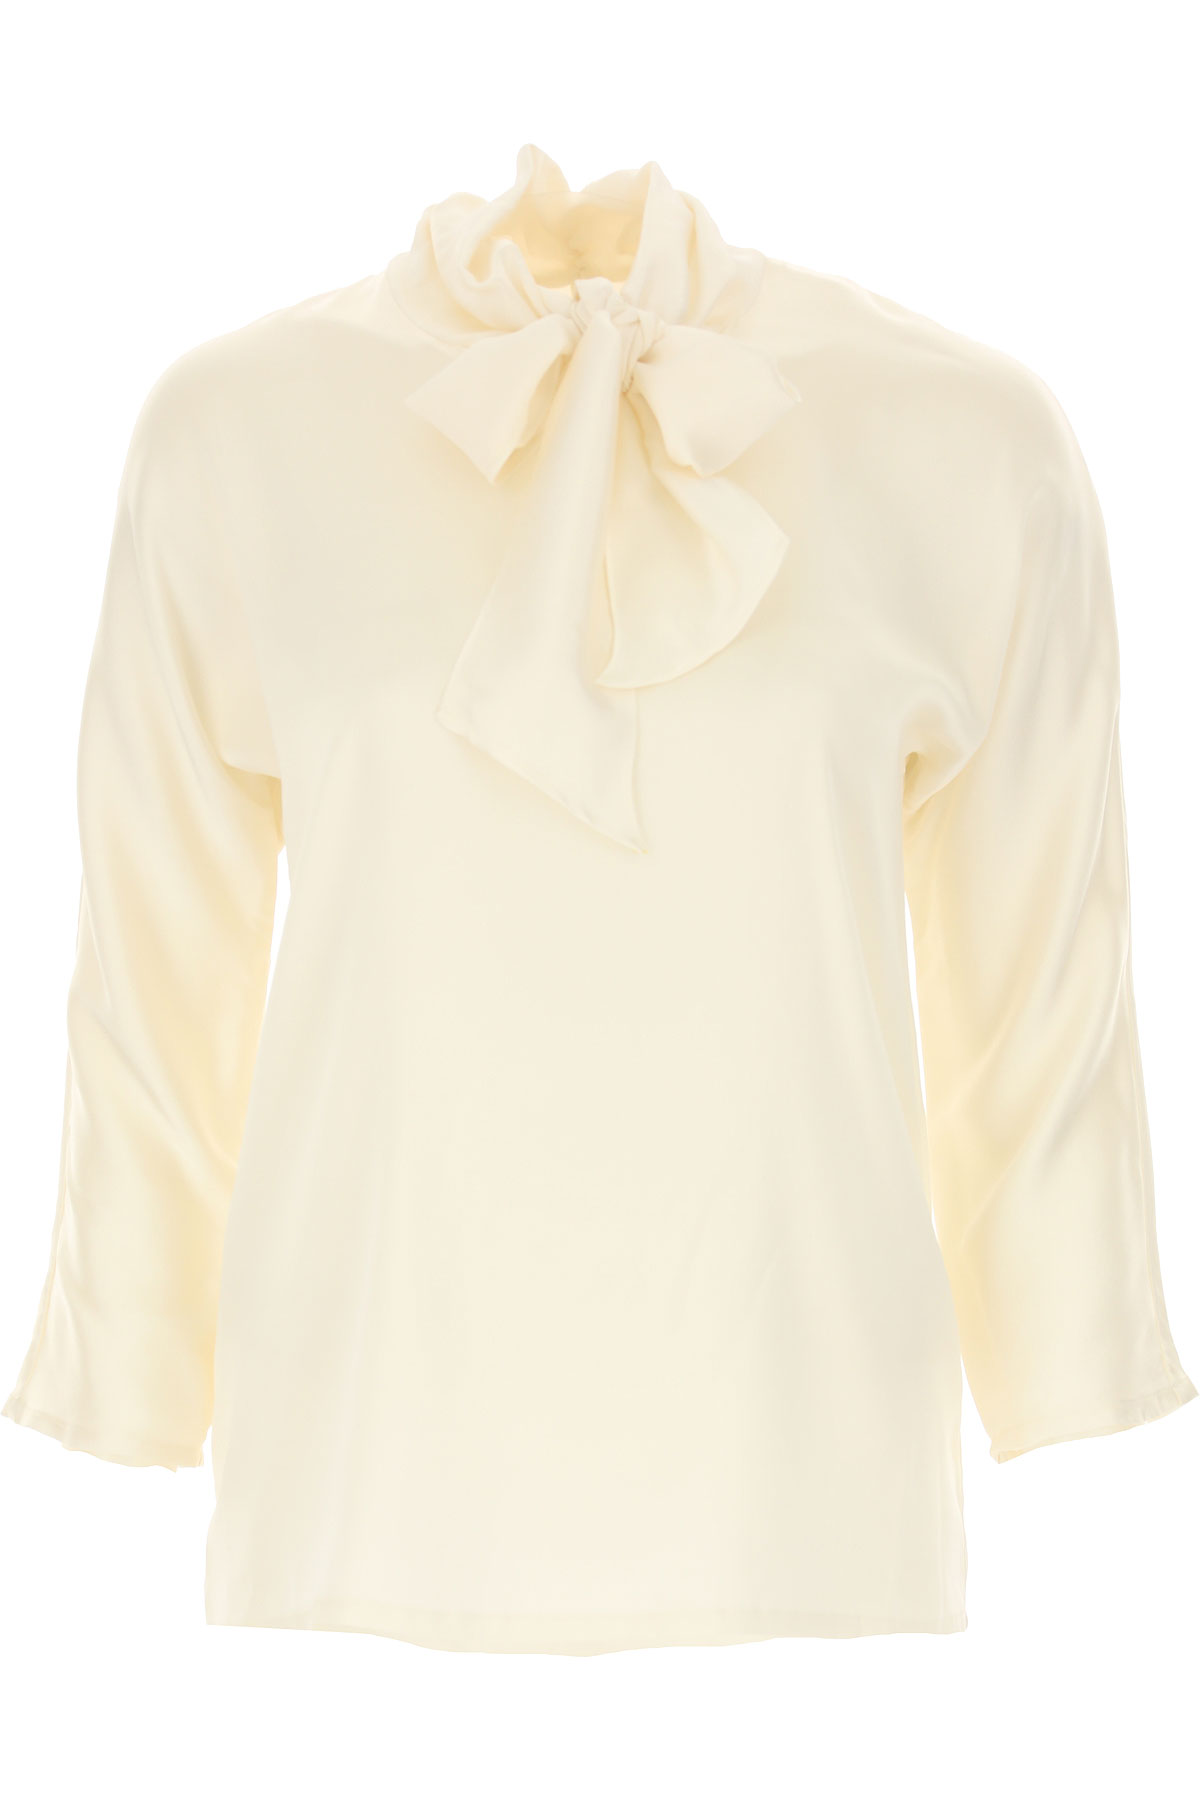 Jucca Top for Women On Sale, Cream, Silk, 2019, 2 4 6 8